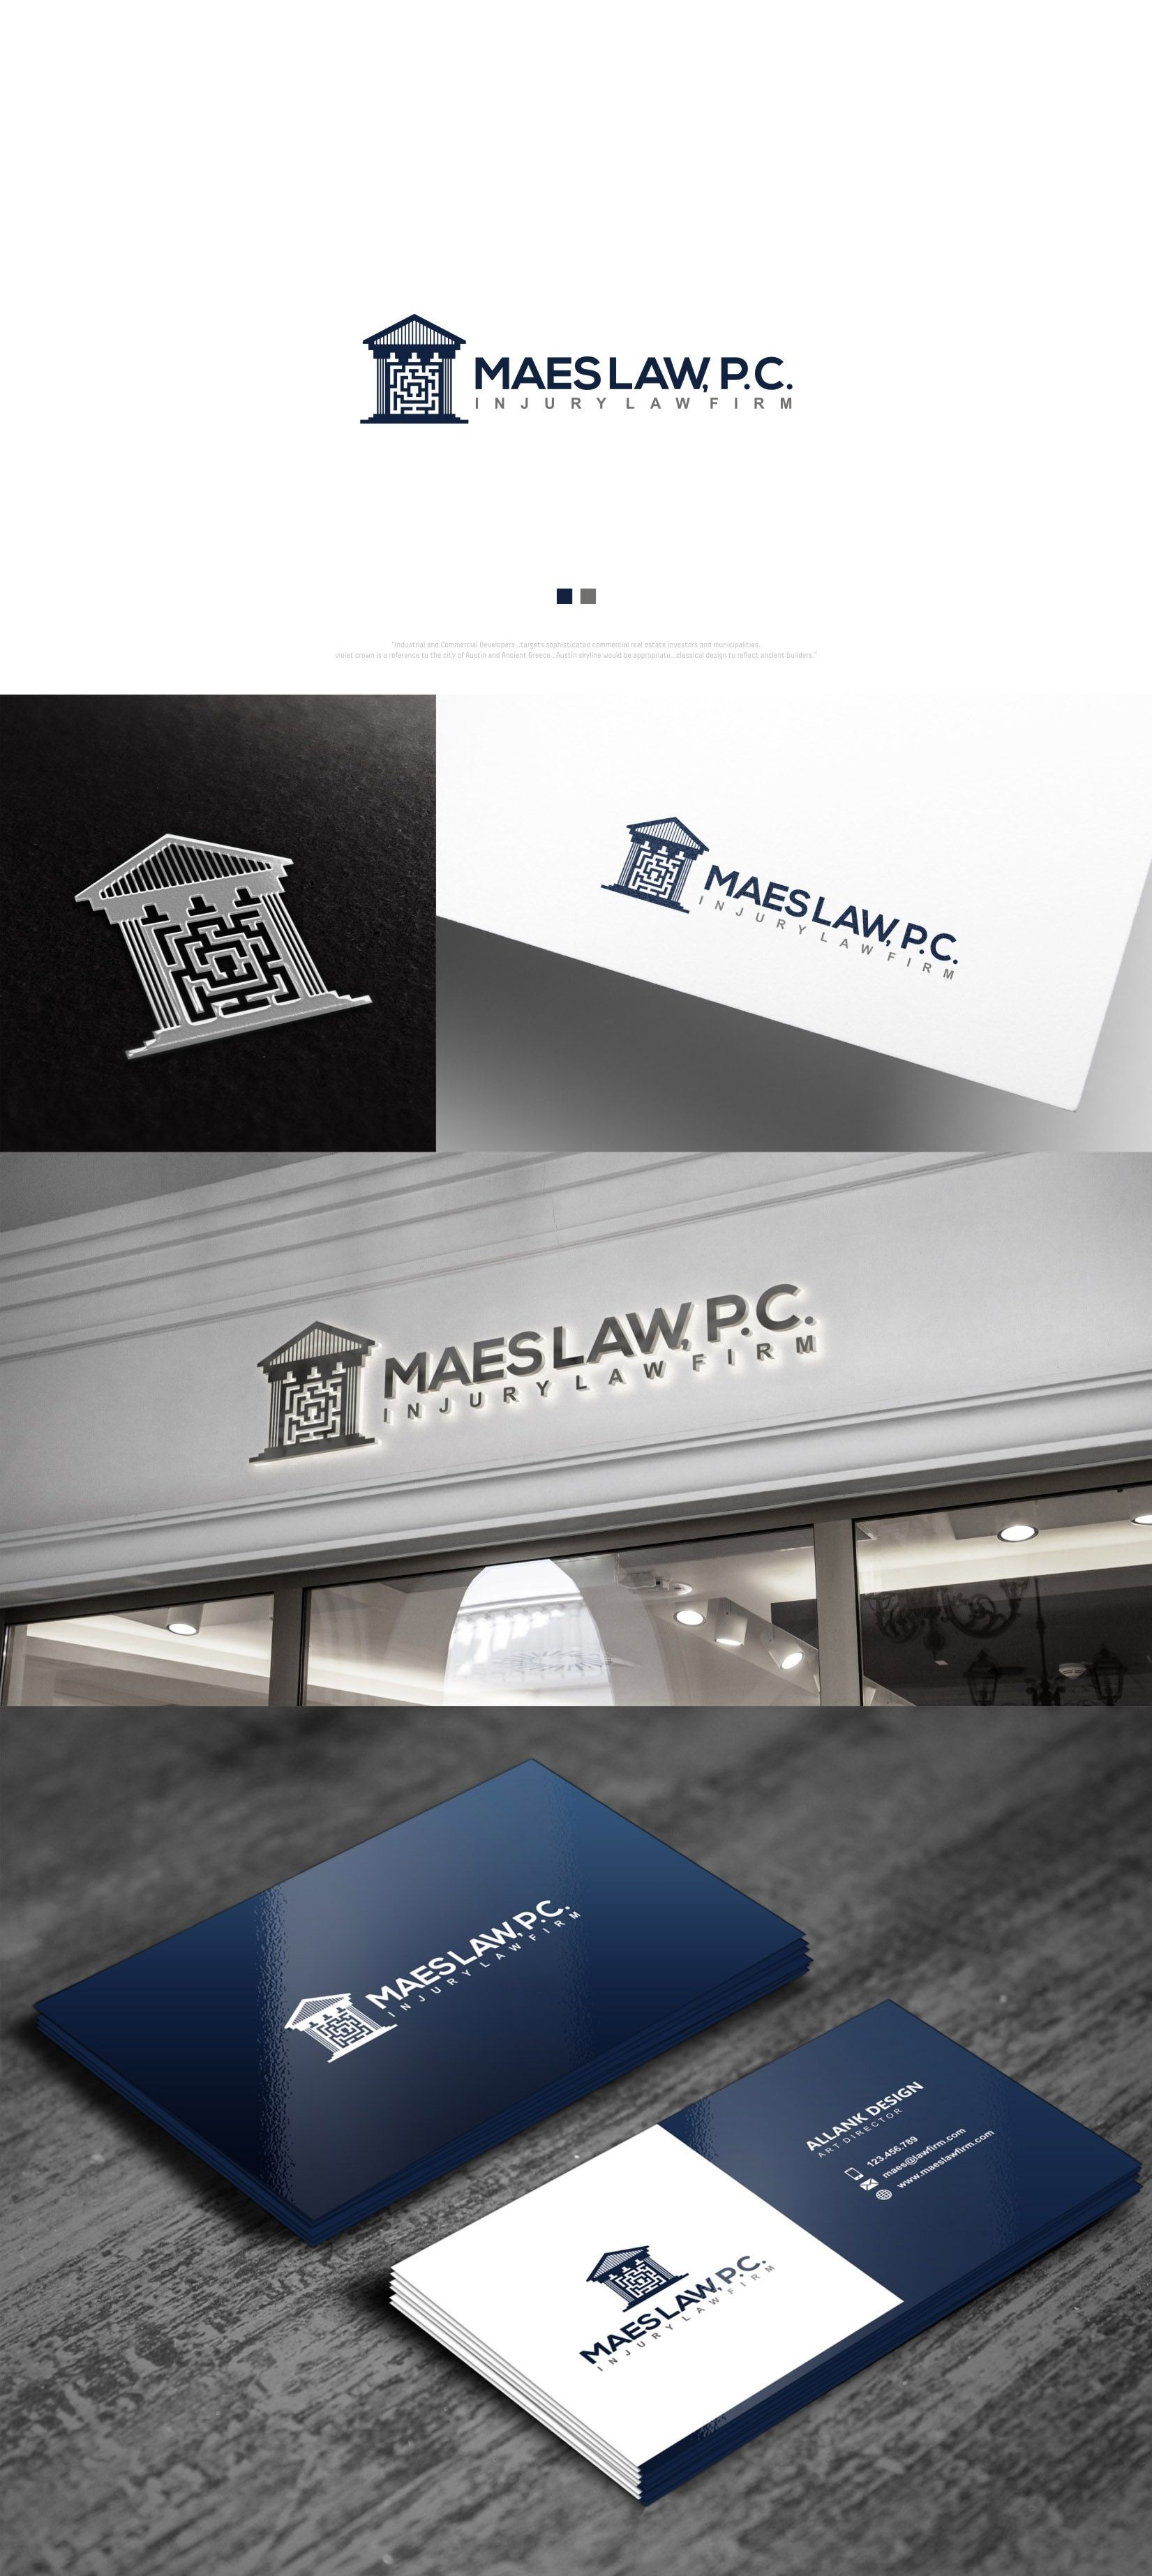 Designs Personal Injury Law Firm Needs Bold Professional Street